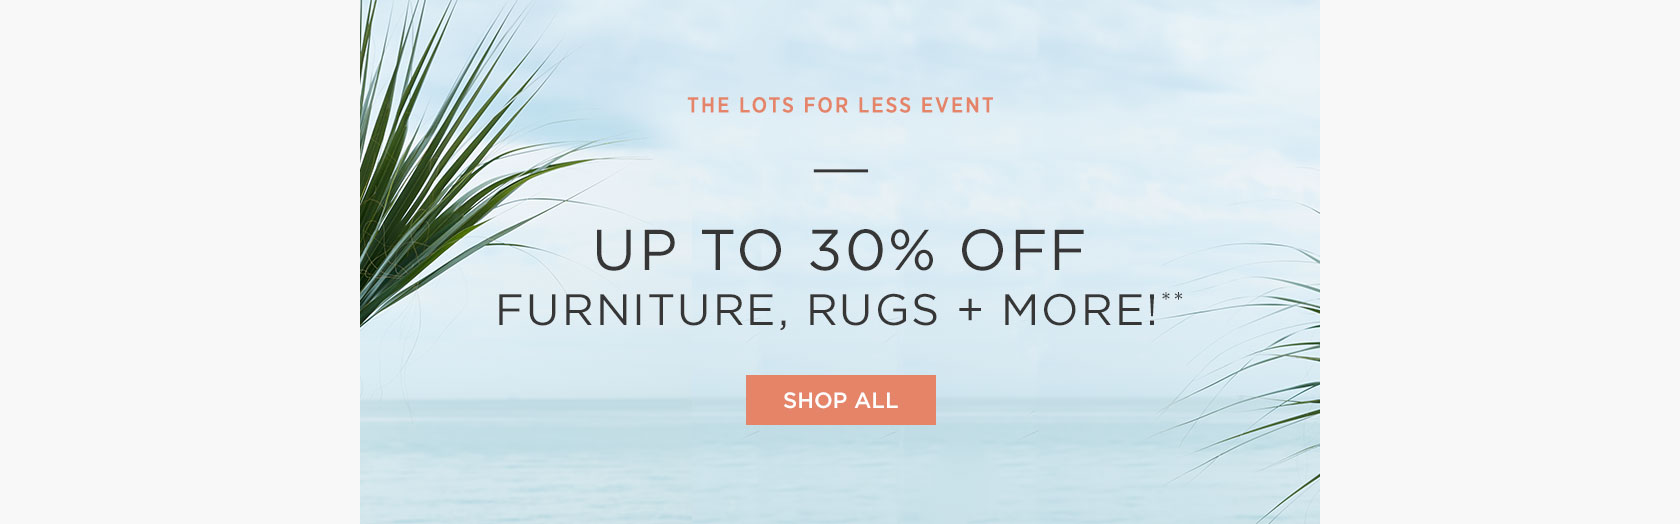 The Lots For Less Event - Up To 30 Percent Off Furniture, Rugs + More